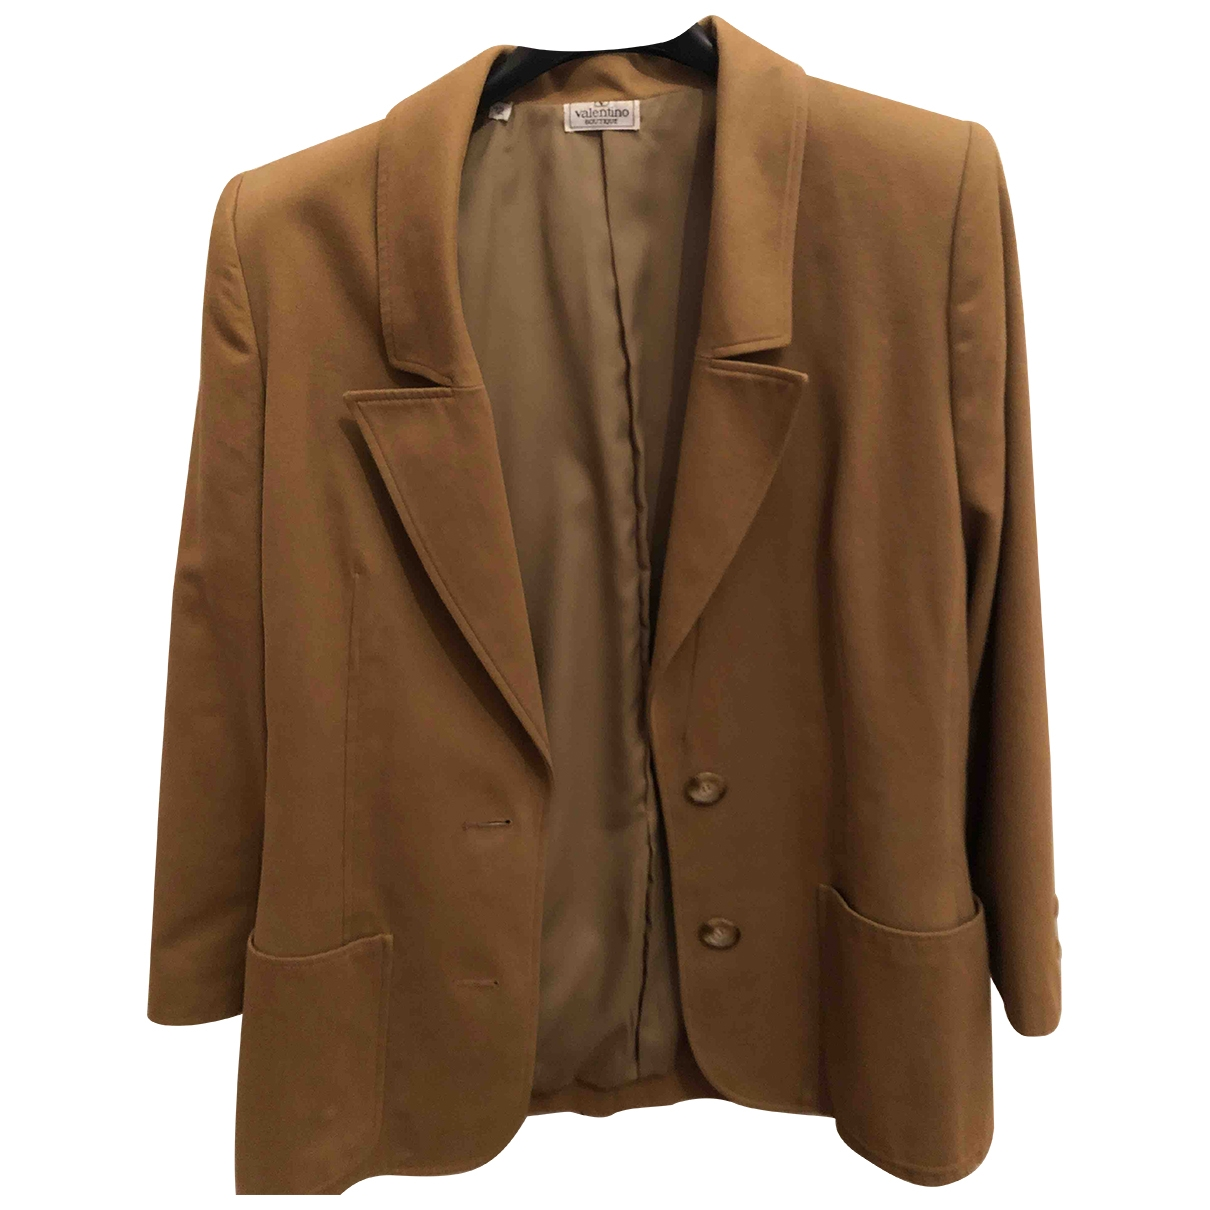 Valentino Garavani \N Camel Cotton jacket for Women M International